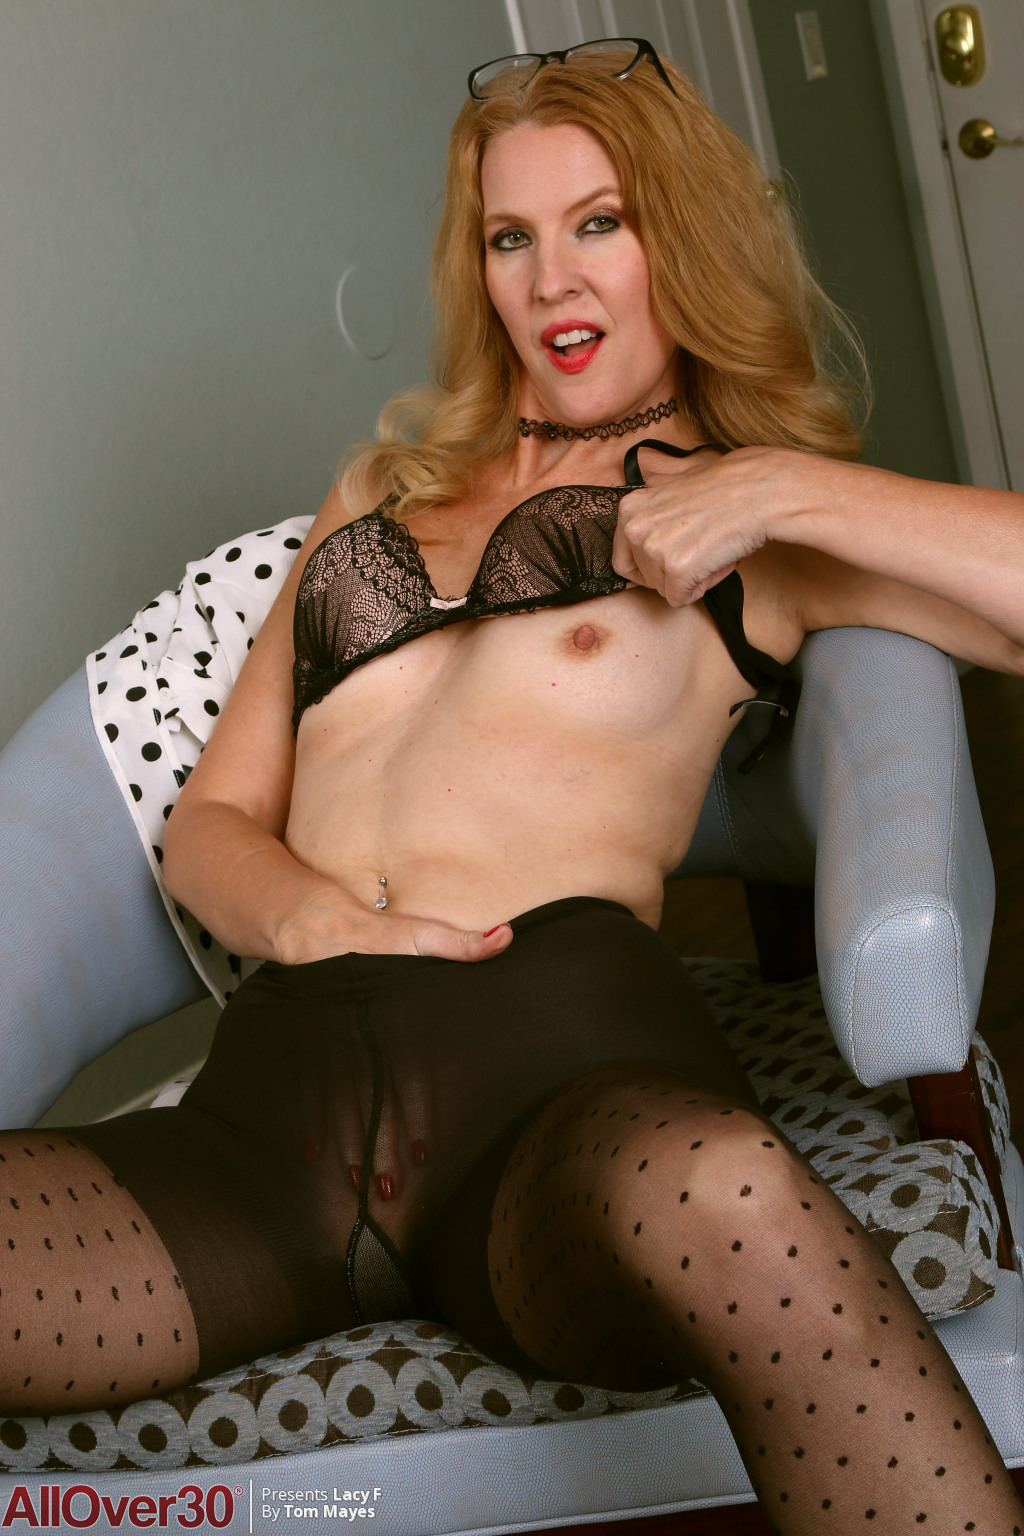 lacy-f-polka-dots-and-stockings-07